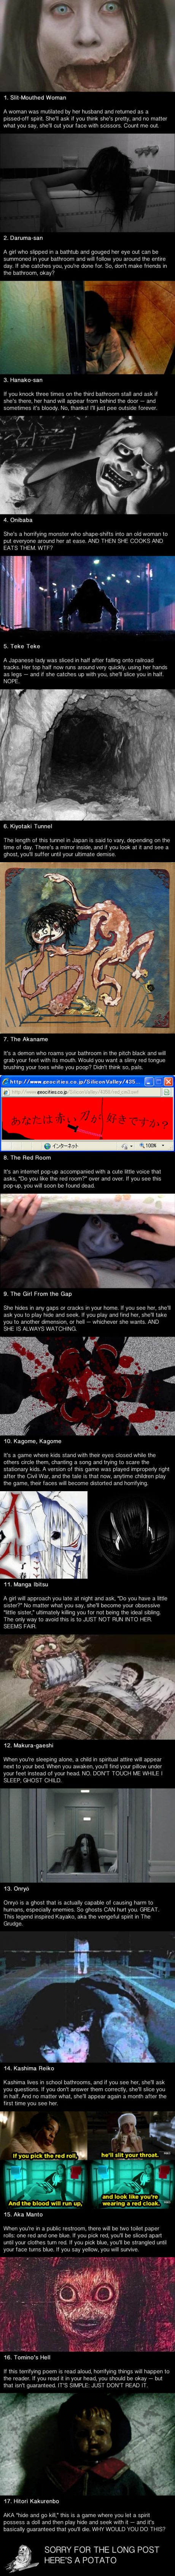 17 Japanese urban legends that will scare you shit your pants